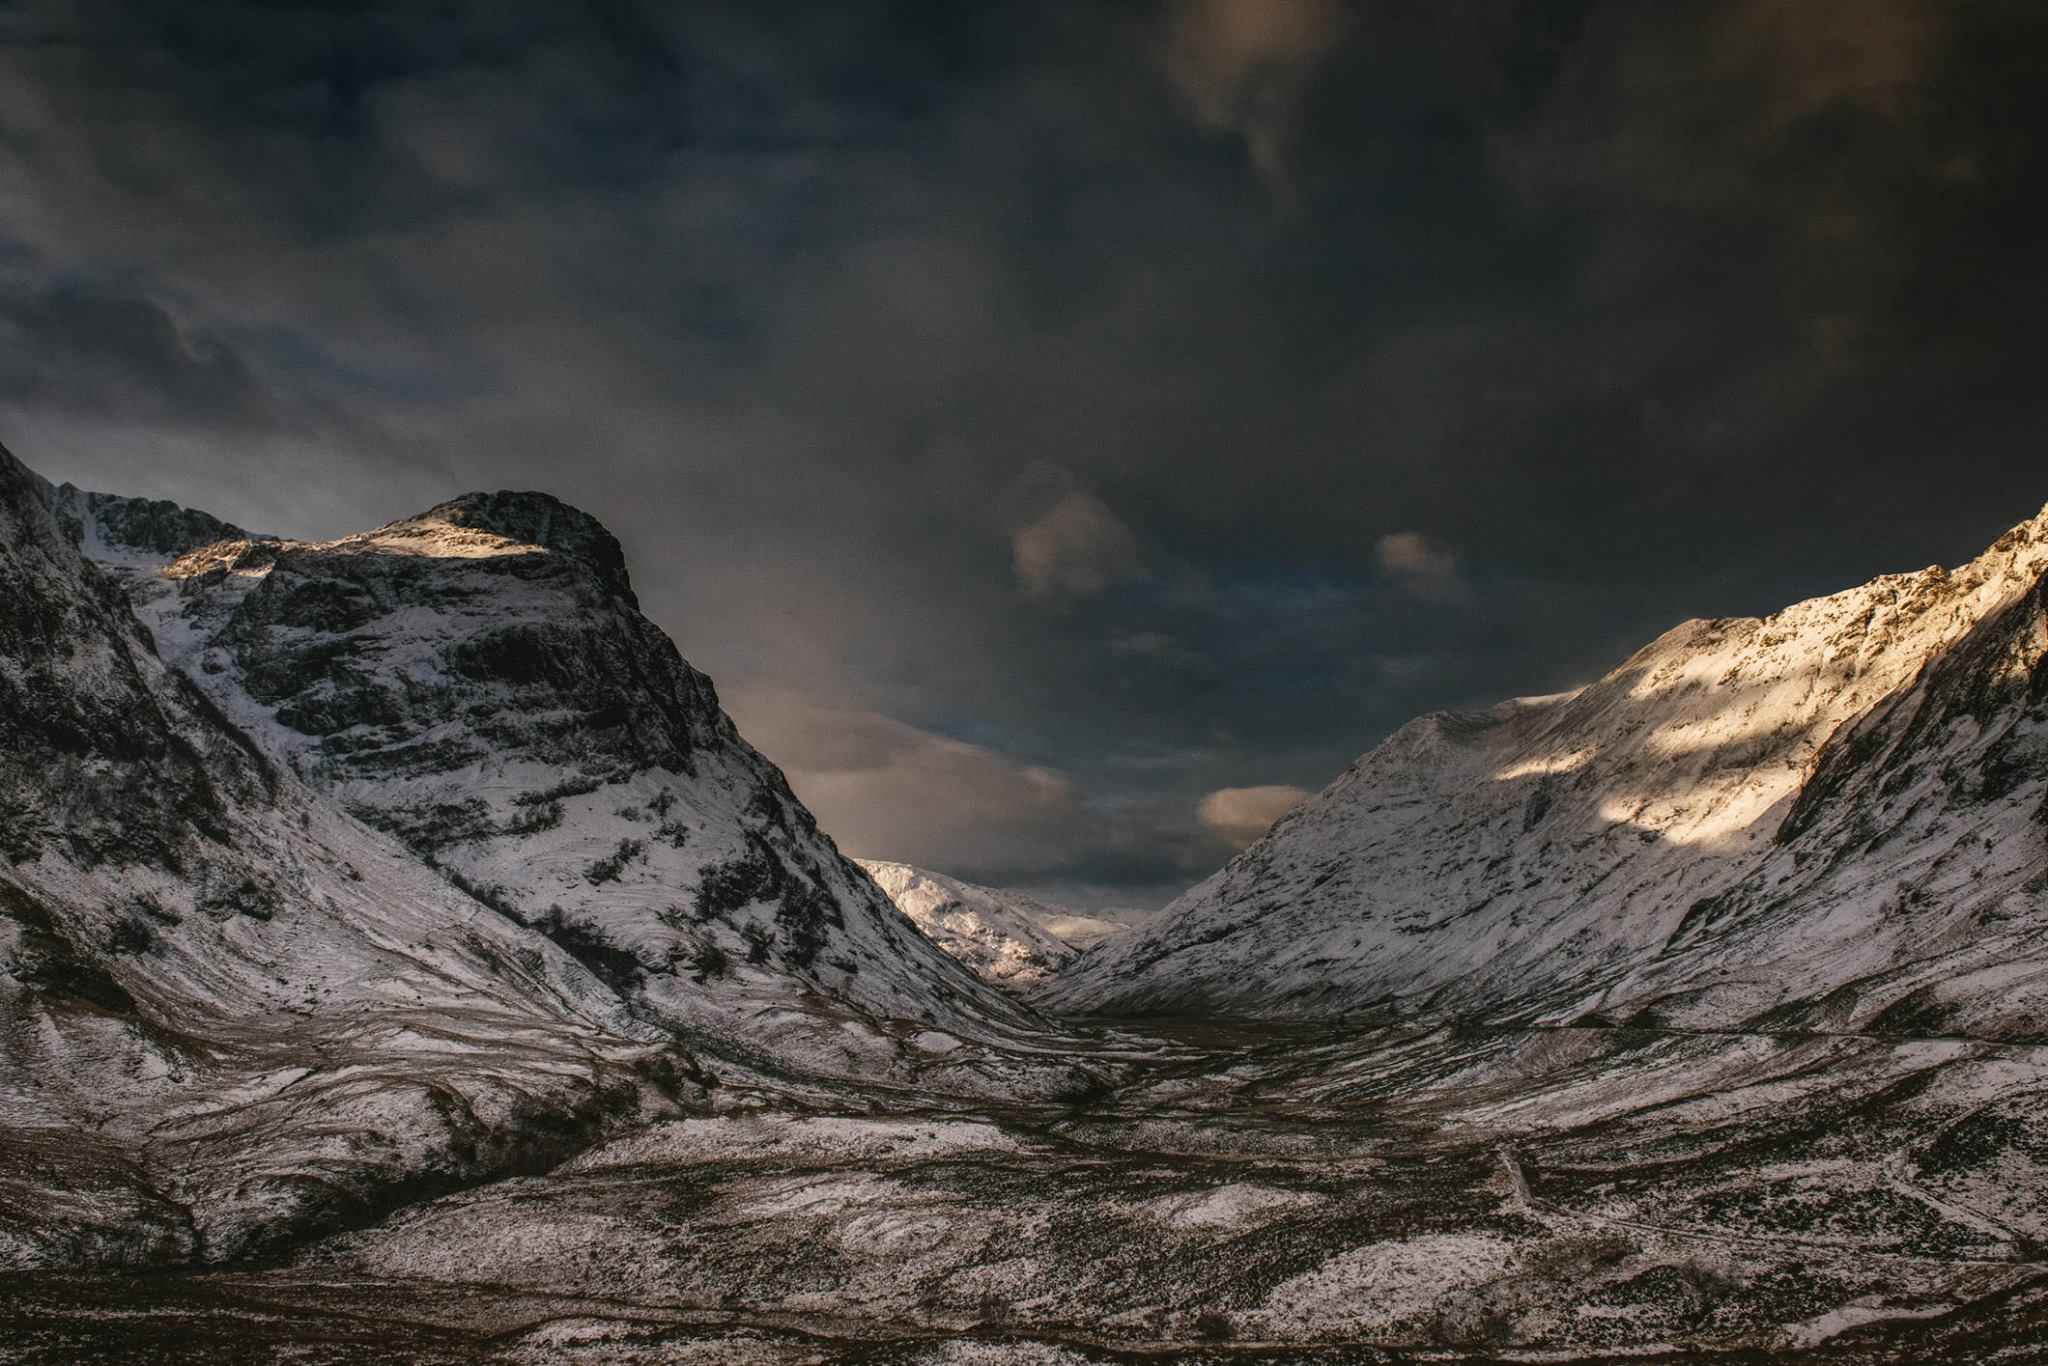 A snowy mountain valley in Ireland